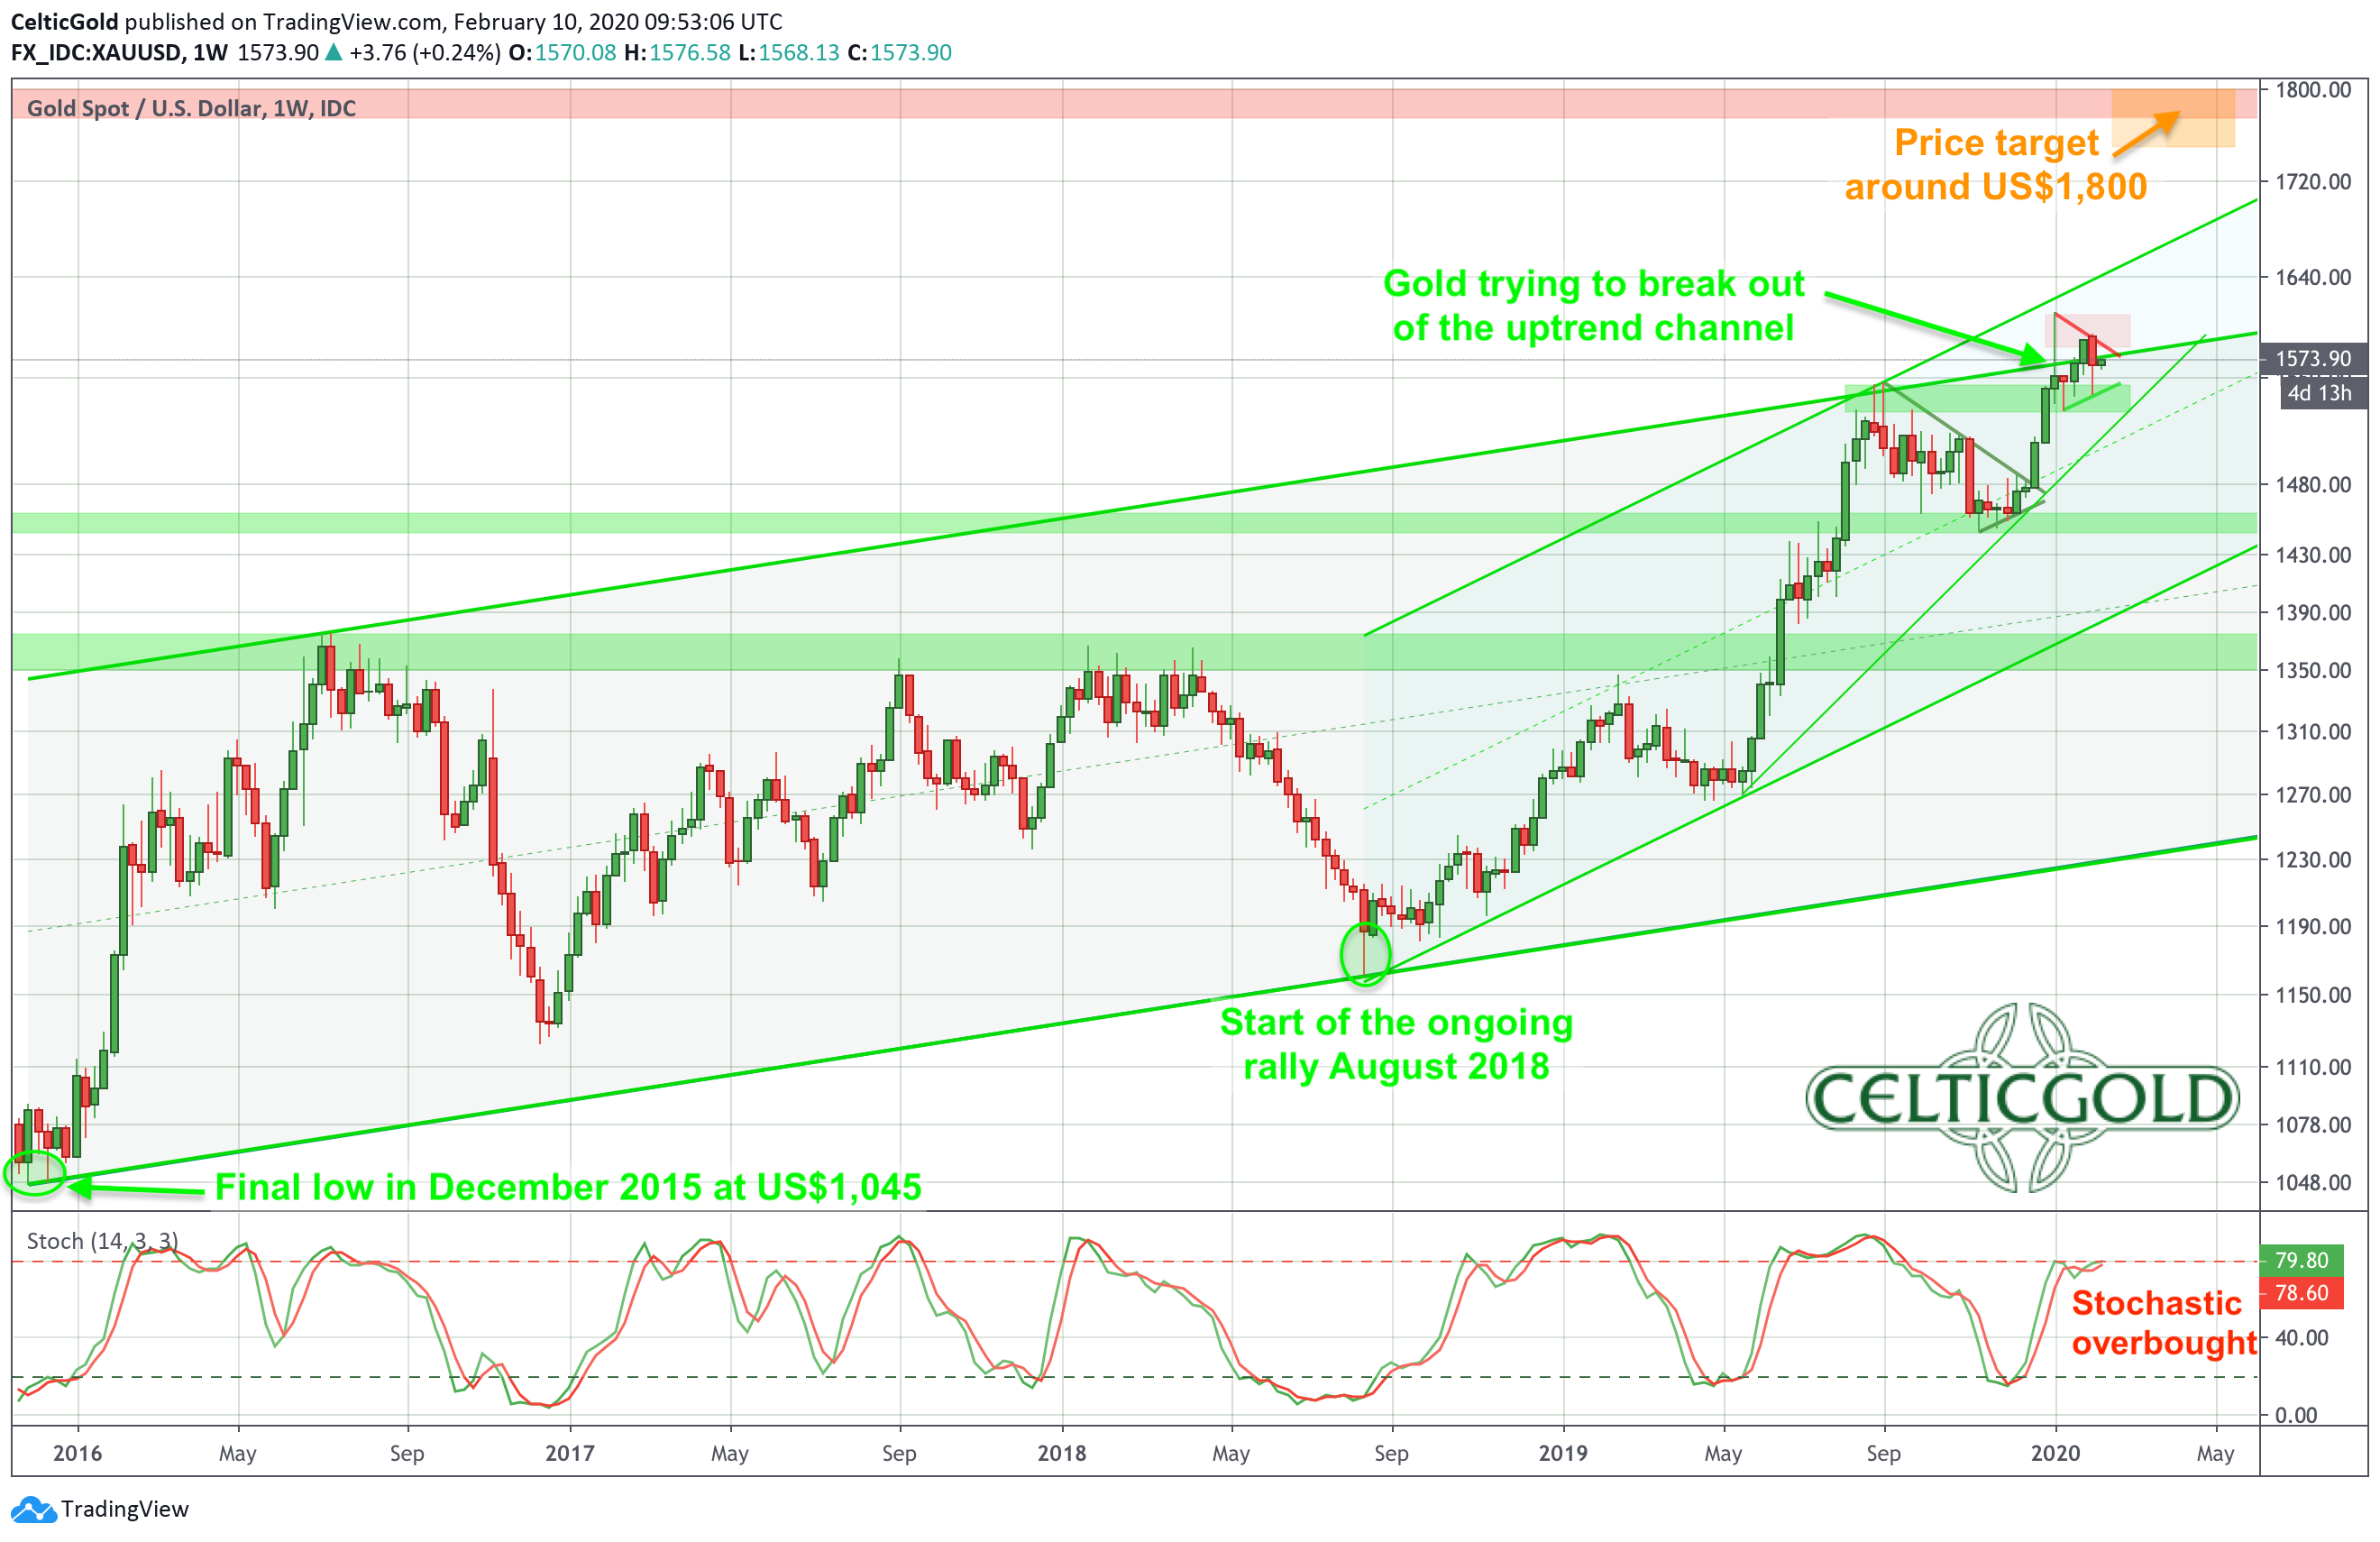 Gold in US-Dollar, weekly chart as of February 10th, 2020. Source: Tradingview